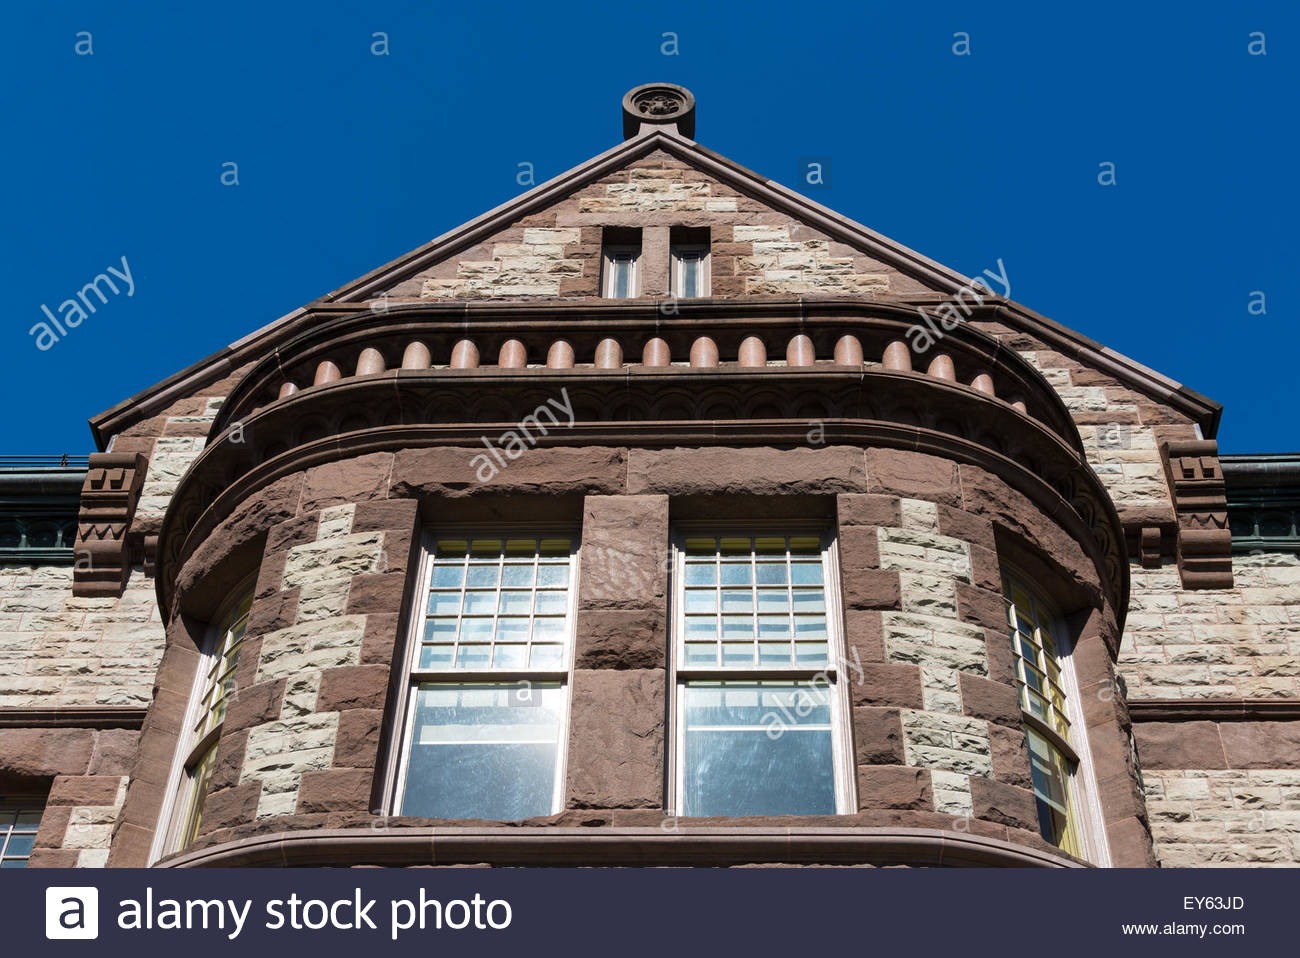 Romanesque revival architecture (Richardsonian Style) in an old building of the University of Toronto - Stock Image